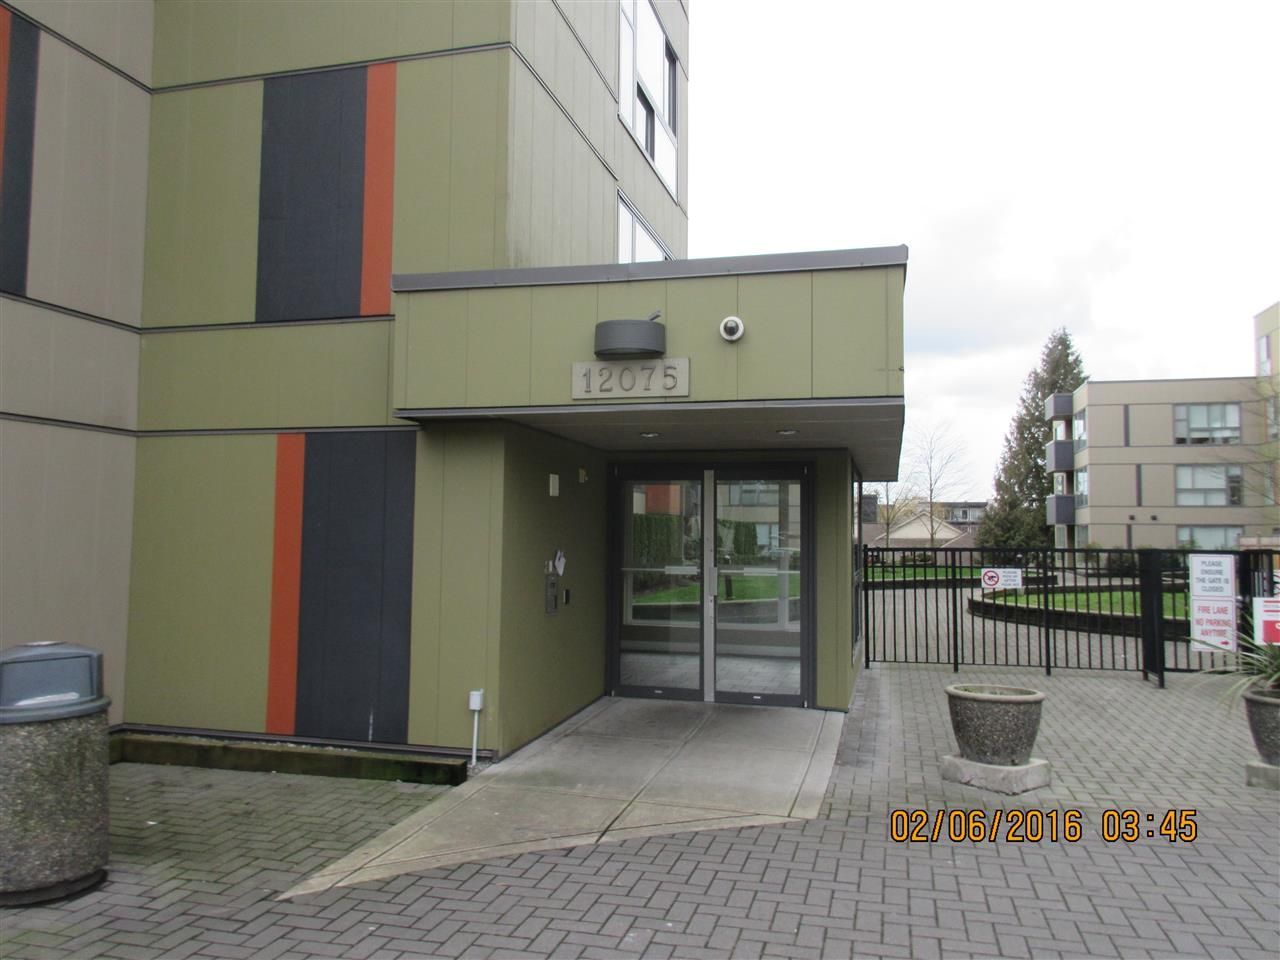 Main Photo: 101 12075 228 Street in Maple Ridge: East Central Condo for sale : MLS®# R2028794